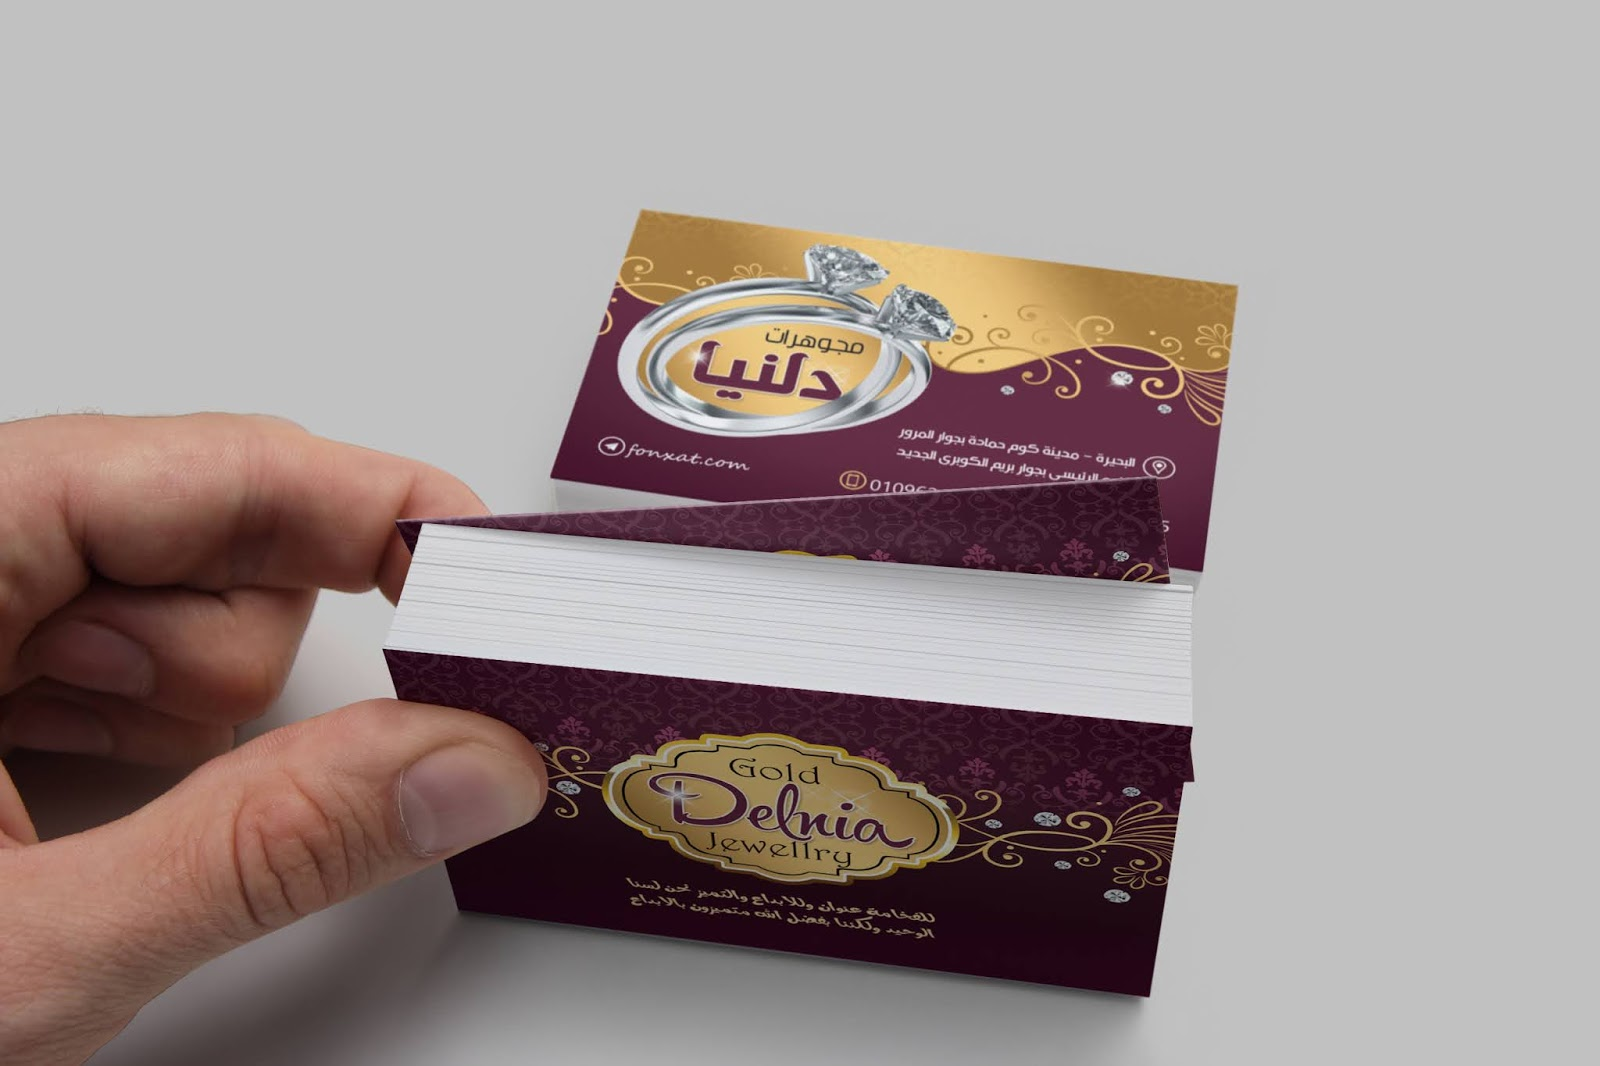 Professional business card gold and jewelry open personal card for gold and silver shops